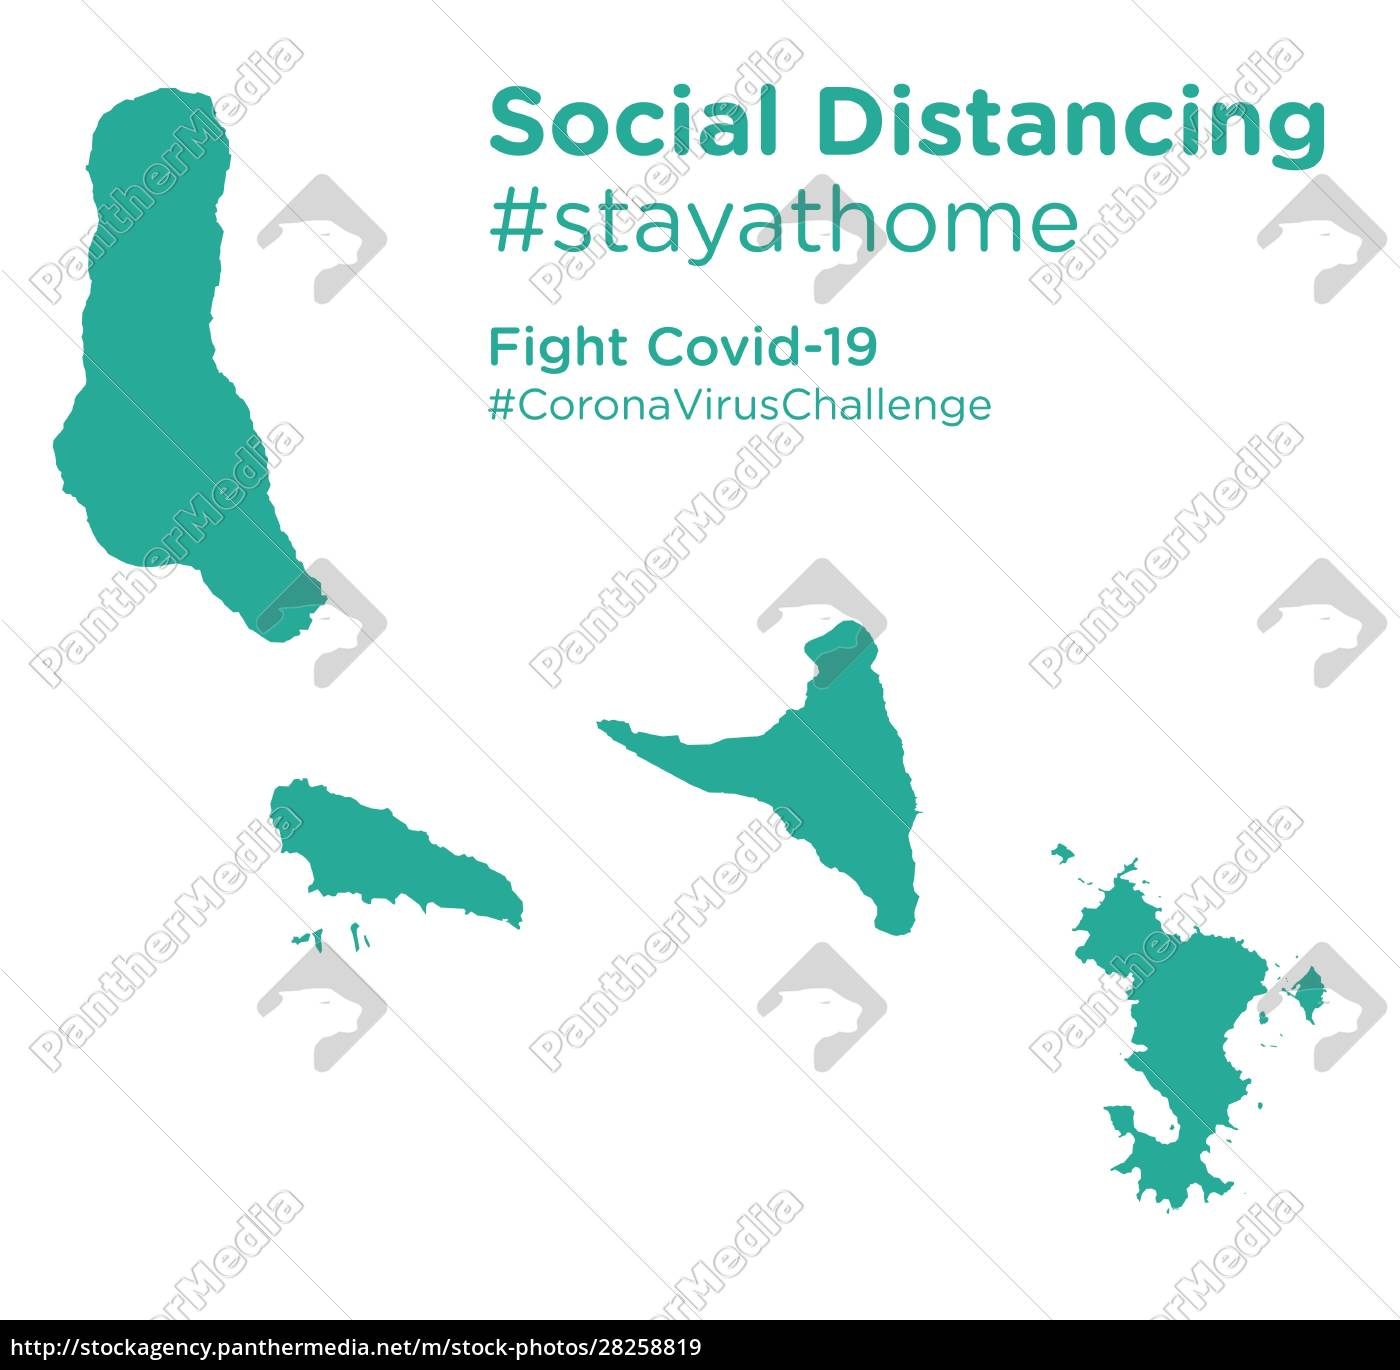 comoros, map, with, social, distancing, #stayathome - 28258819